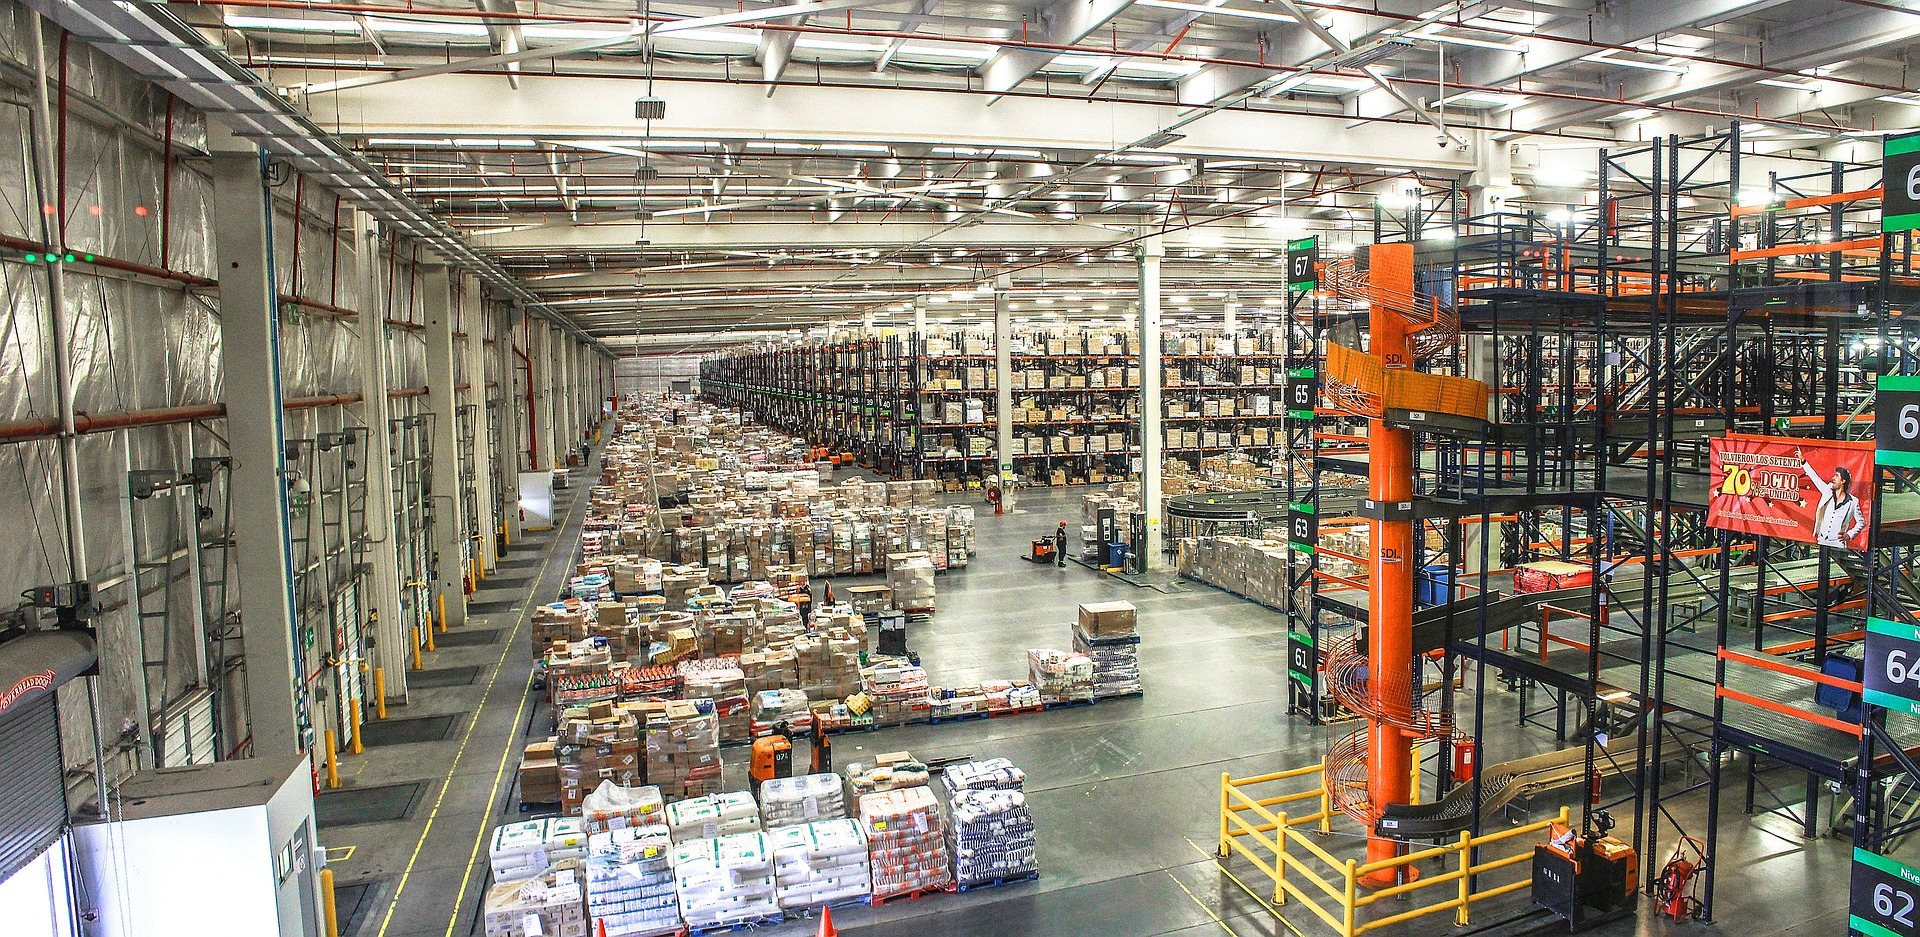 Large distribution center with conveyors